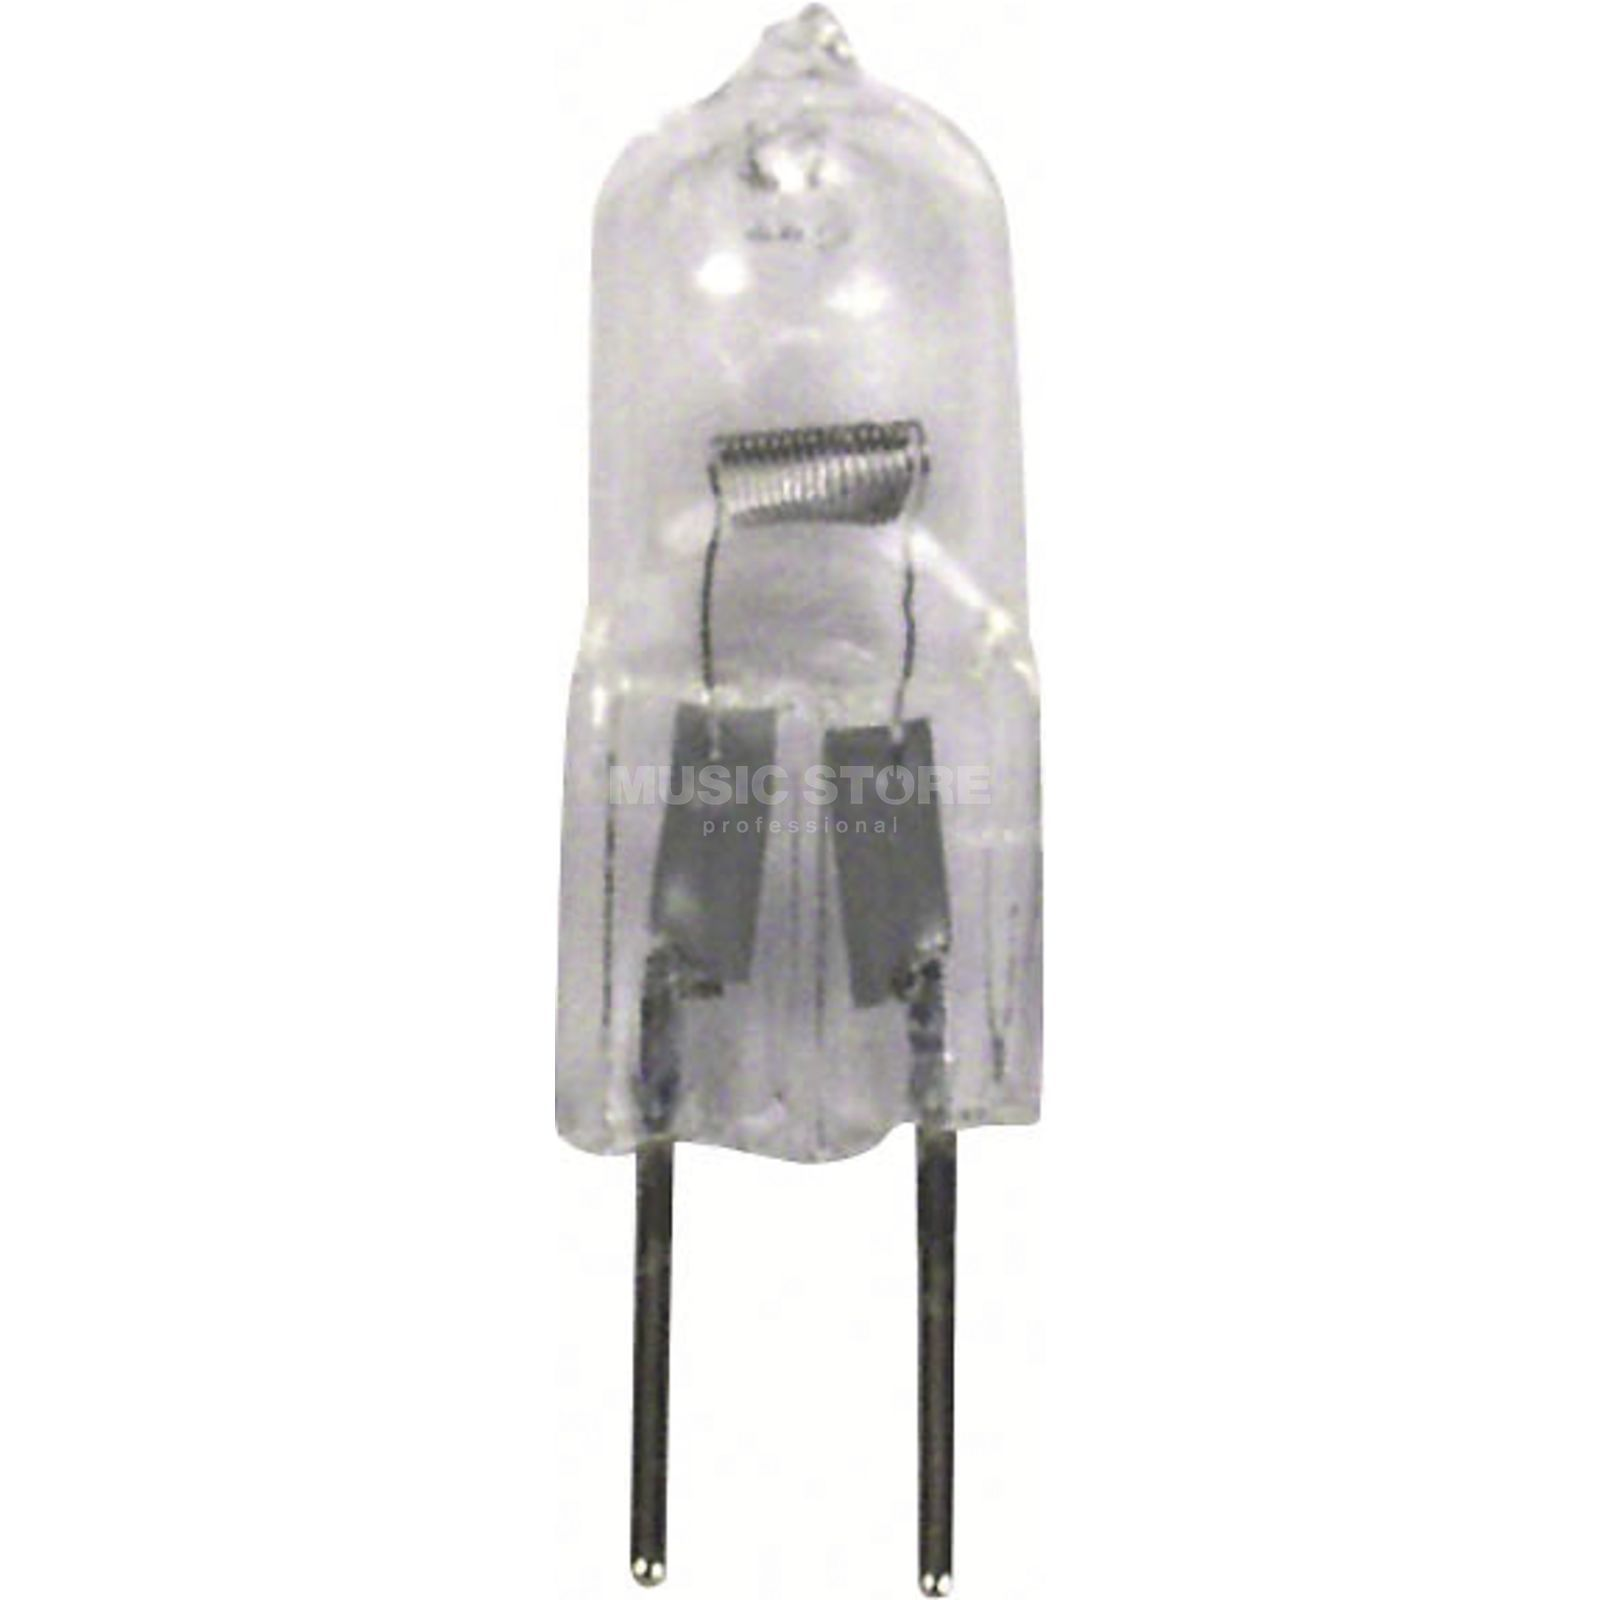 lightmaXX Halogen Lamp, Bulb G 6,35 50 watts, 12 volts Produktbillede